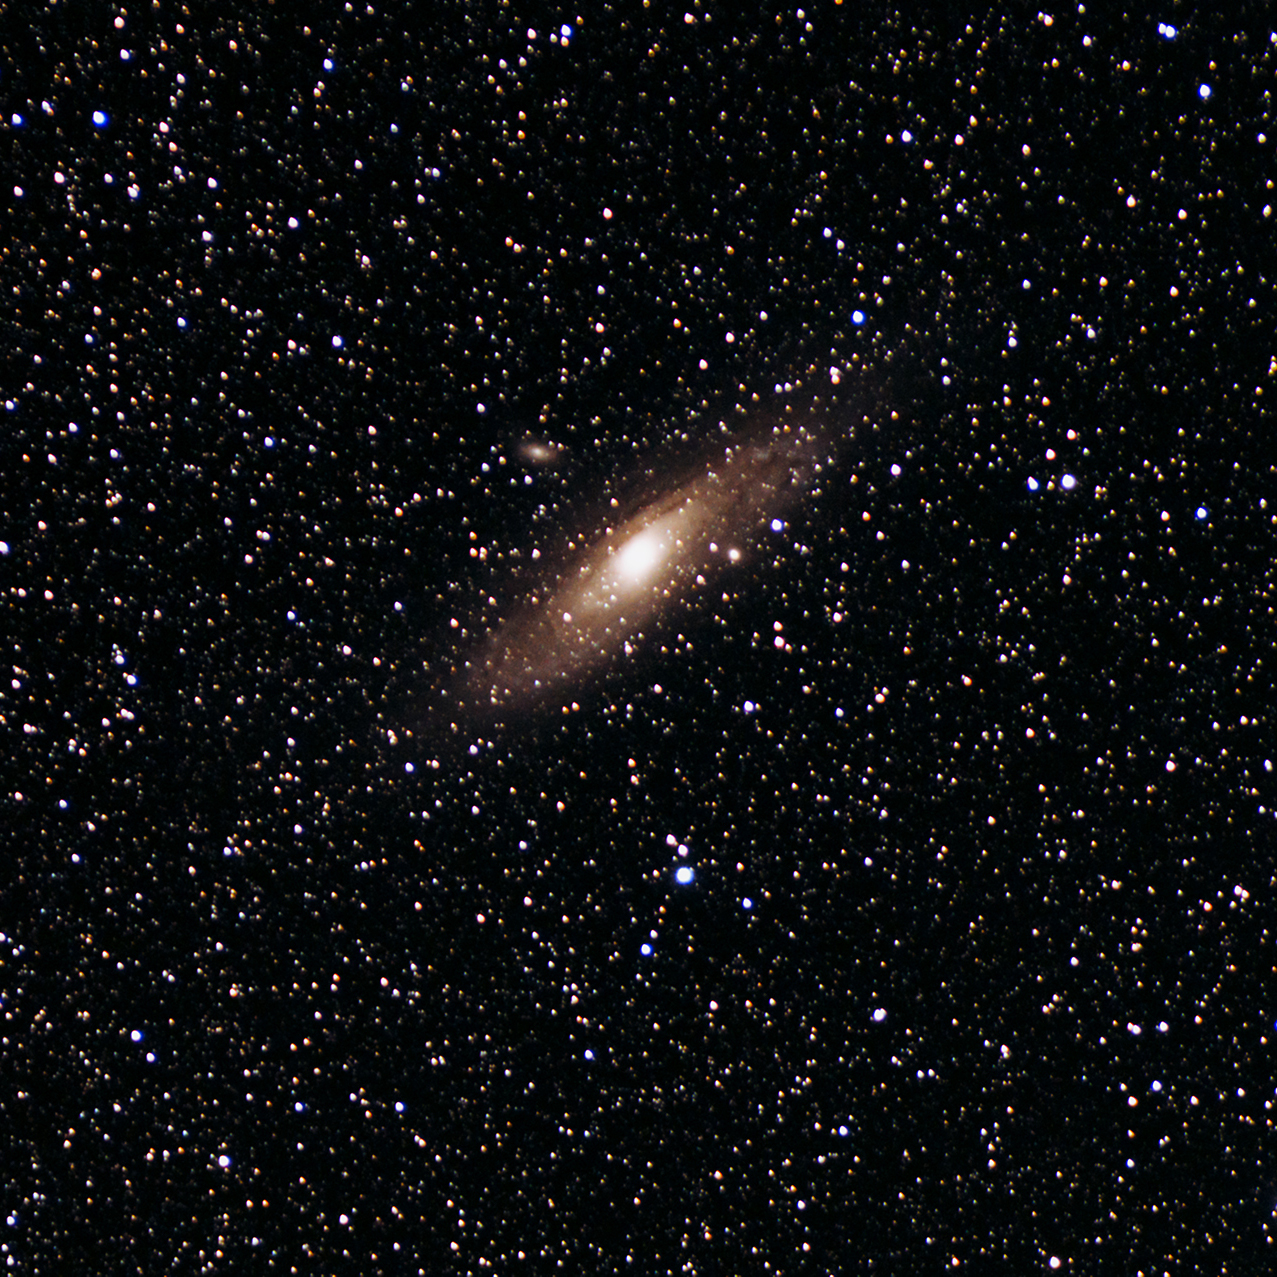 The Andromeda Galaxy taken by astrophotographer Nick Lake